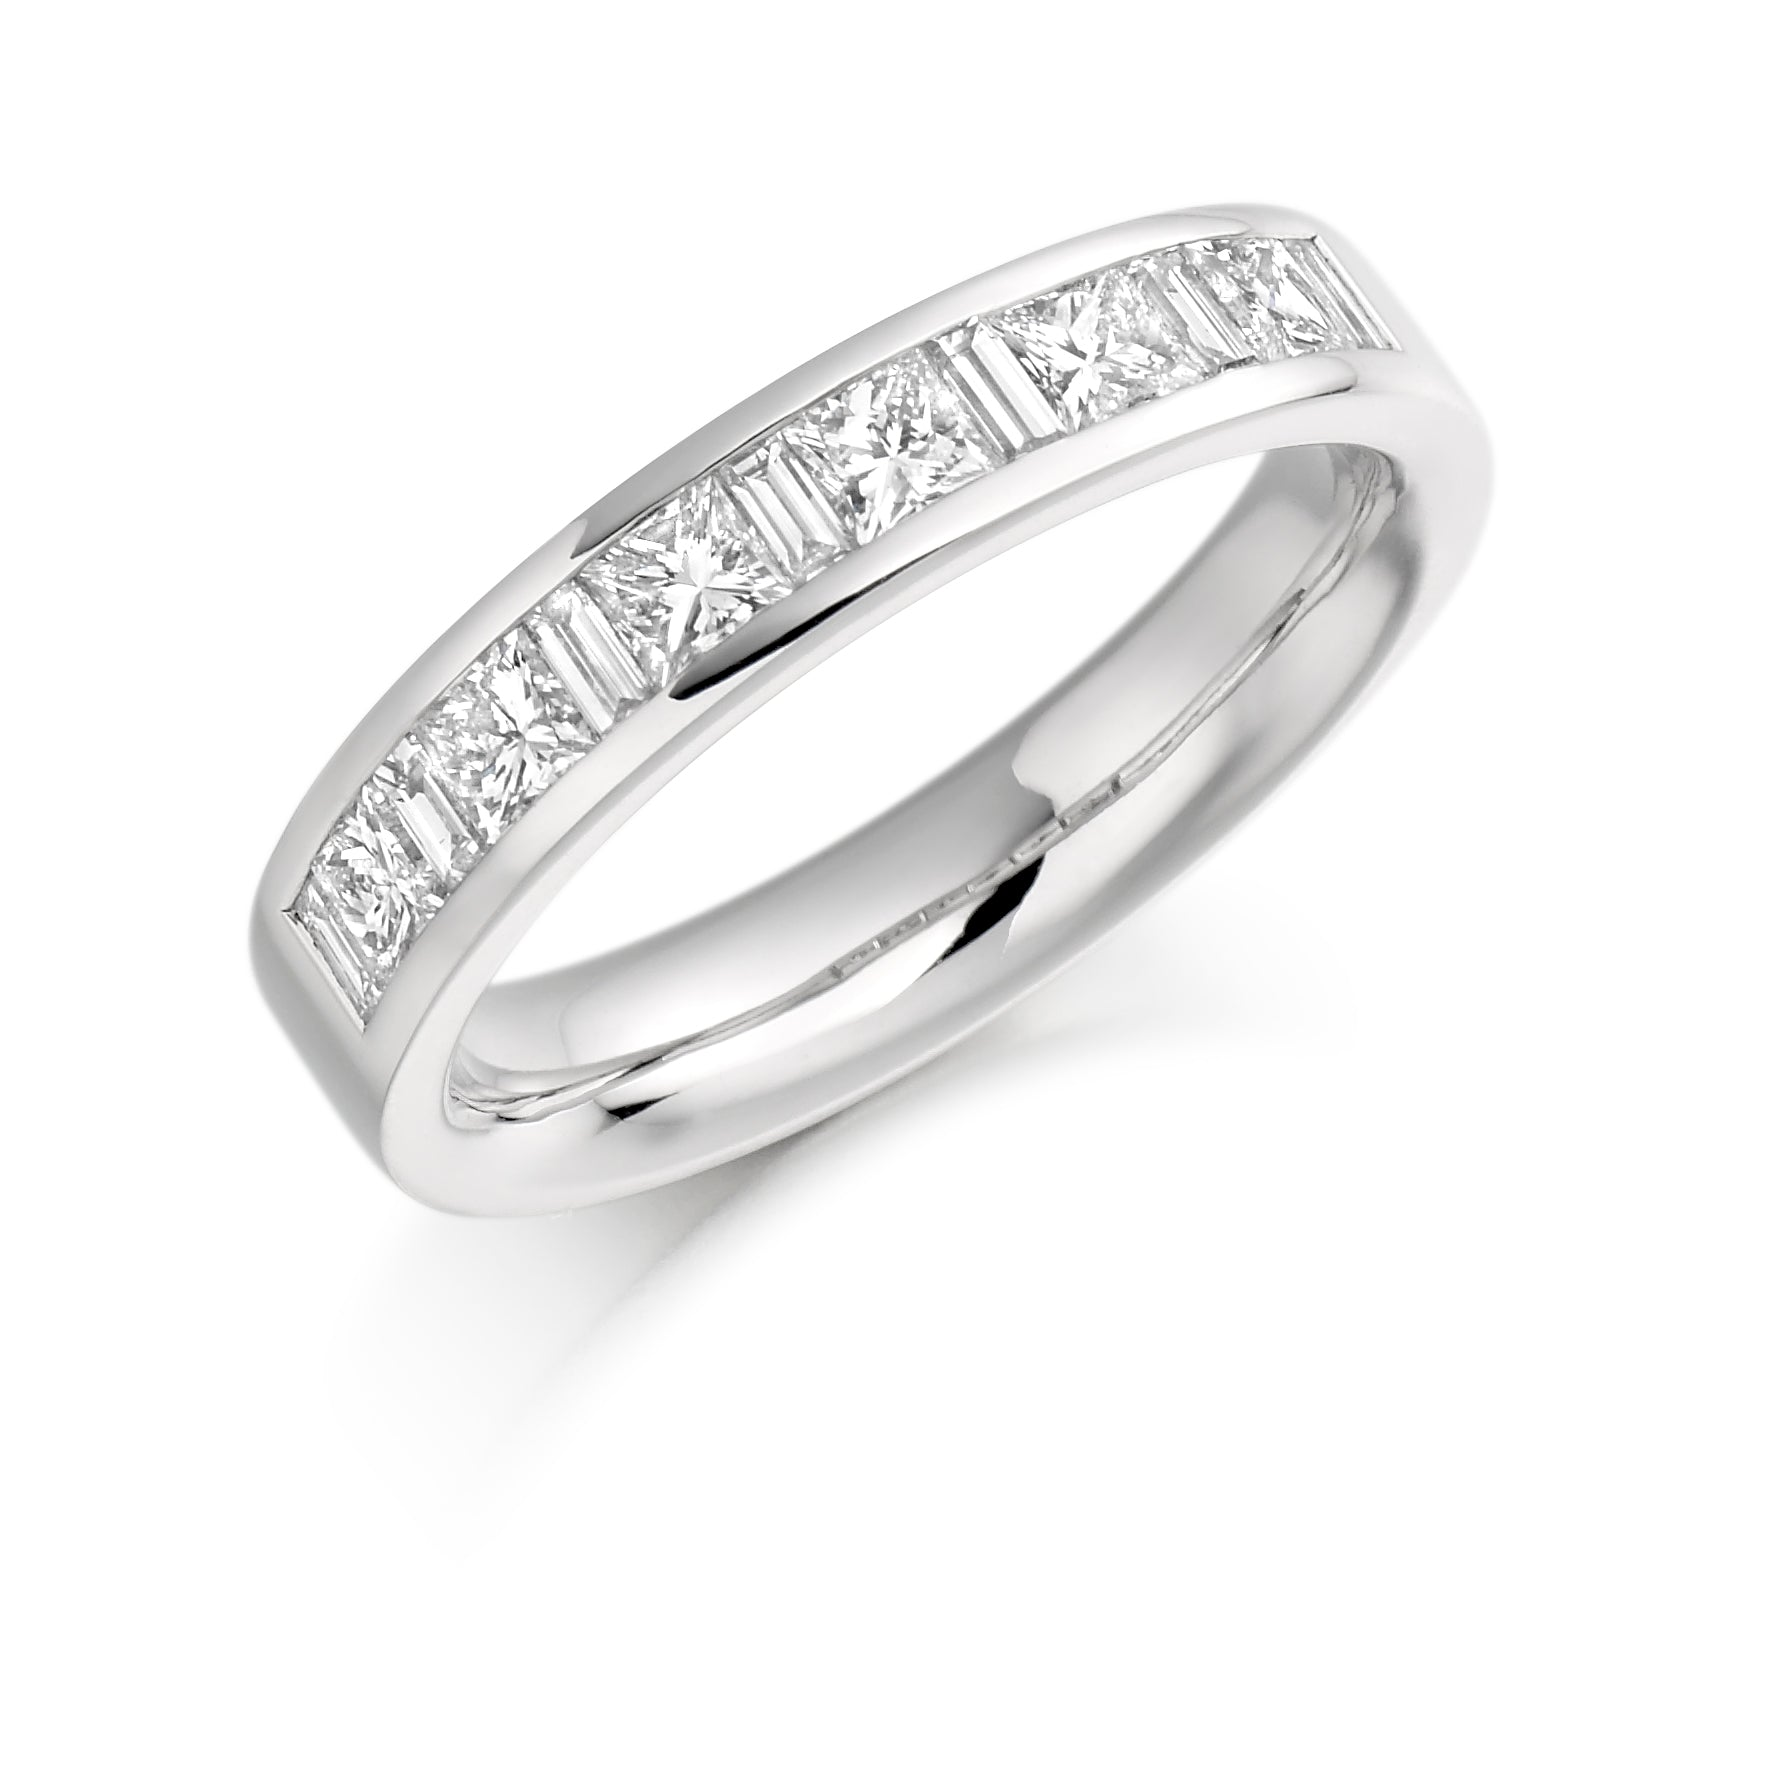 1ct Princess & Baguette Cut Eternity Ring - (Home Try-On)